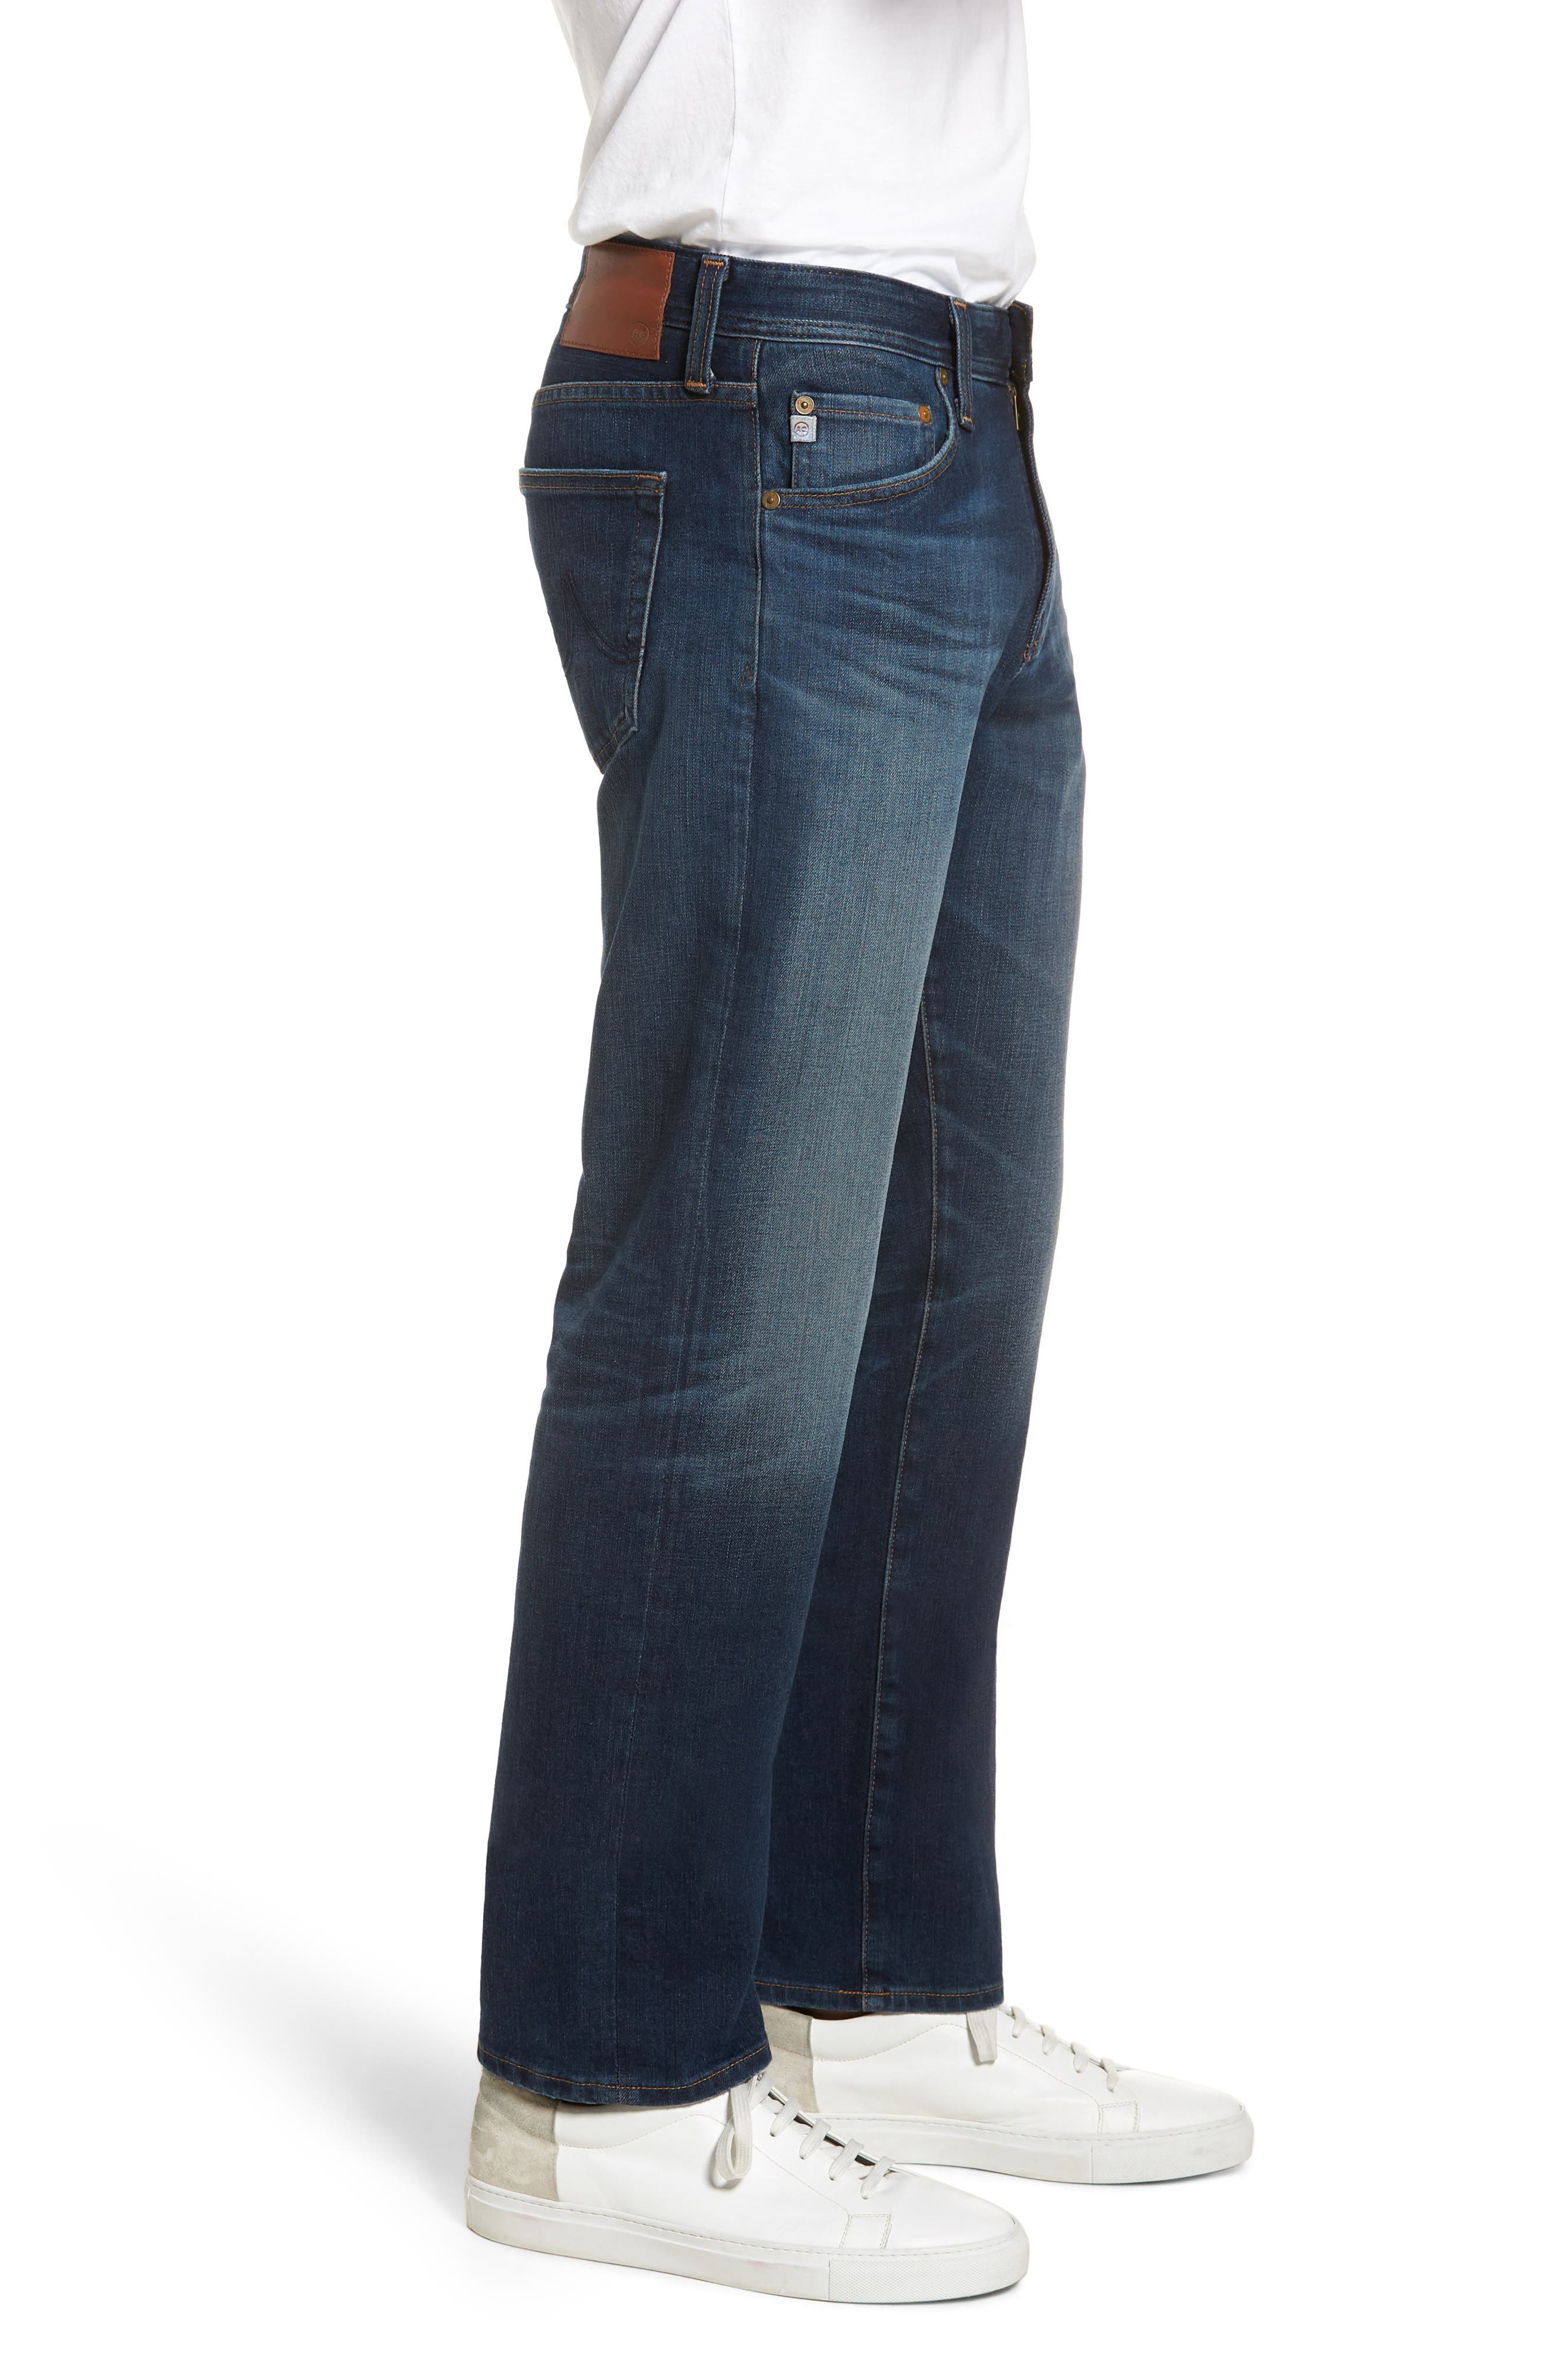 Graduate Slim Straight Leg Jeans,                             Alternate thumbnail 3, color,                             9 Years Faring